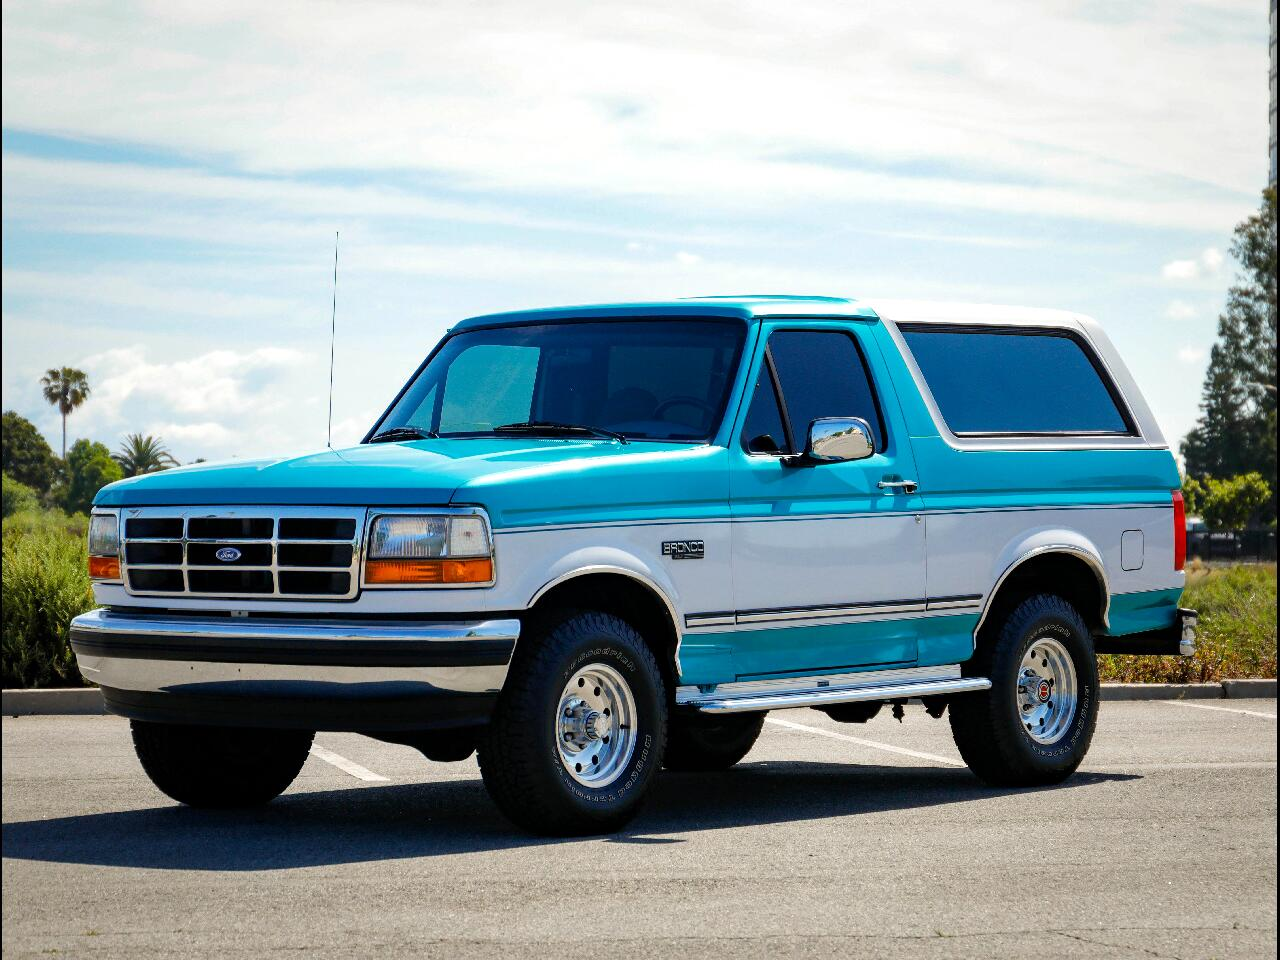 Used Ford Bronco for Sale in San Francisco, CA: 116 Cars